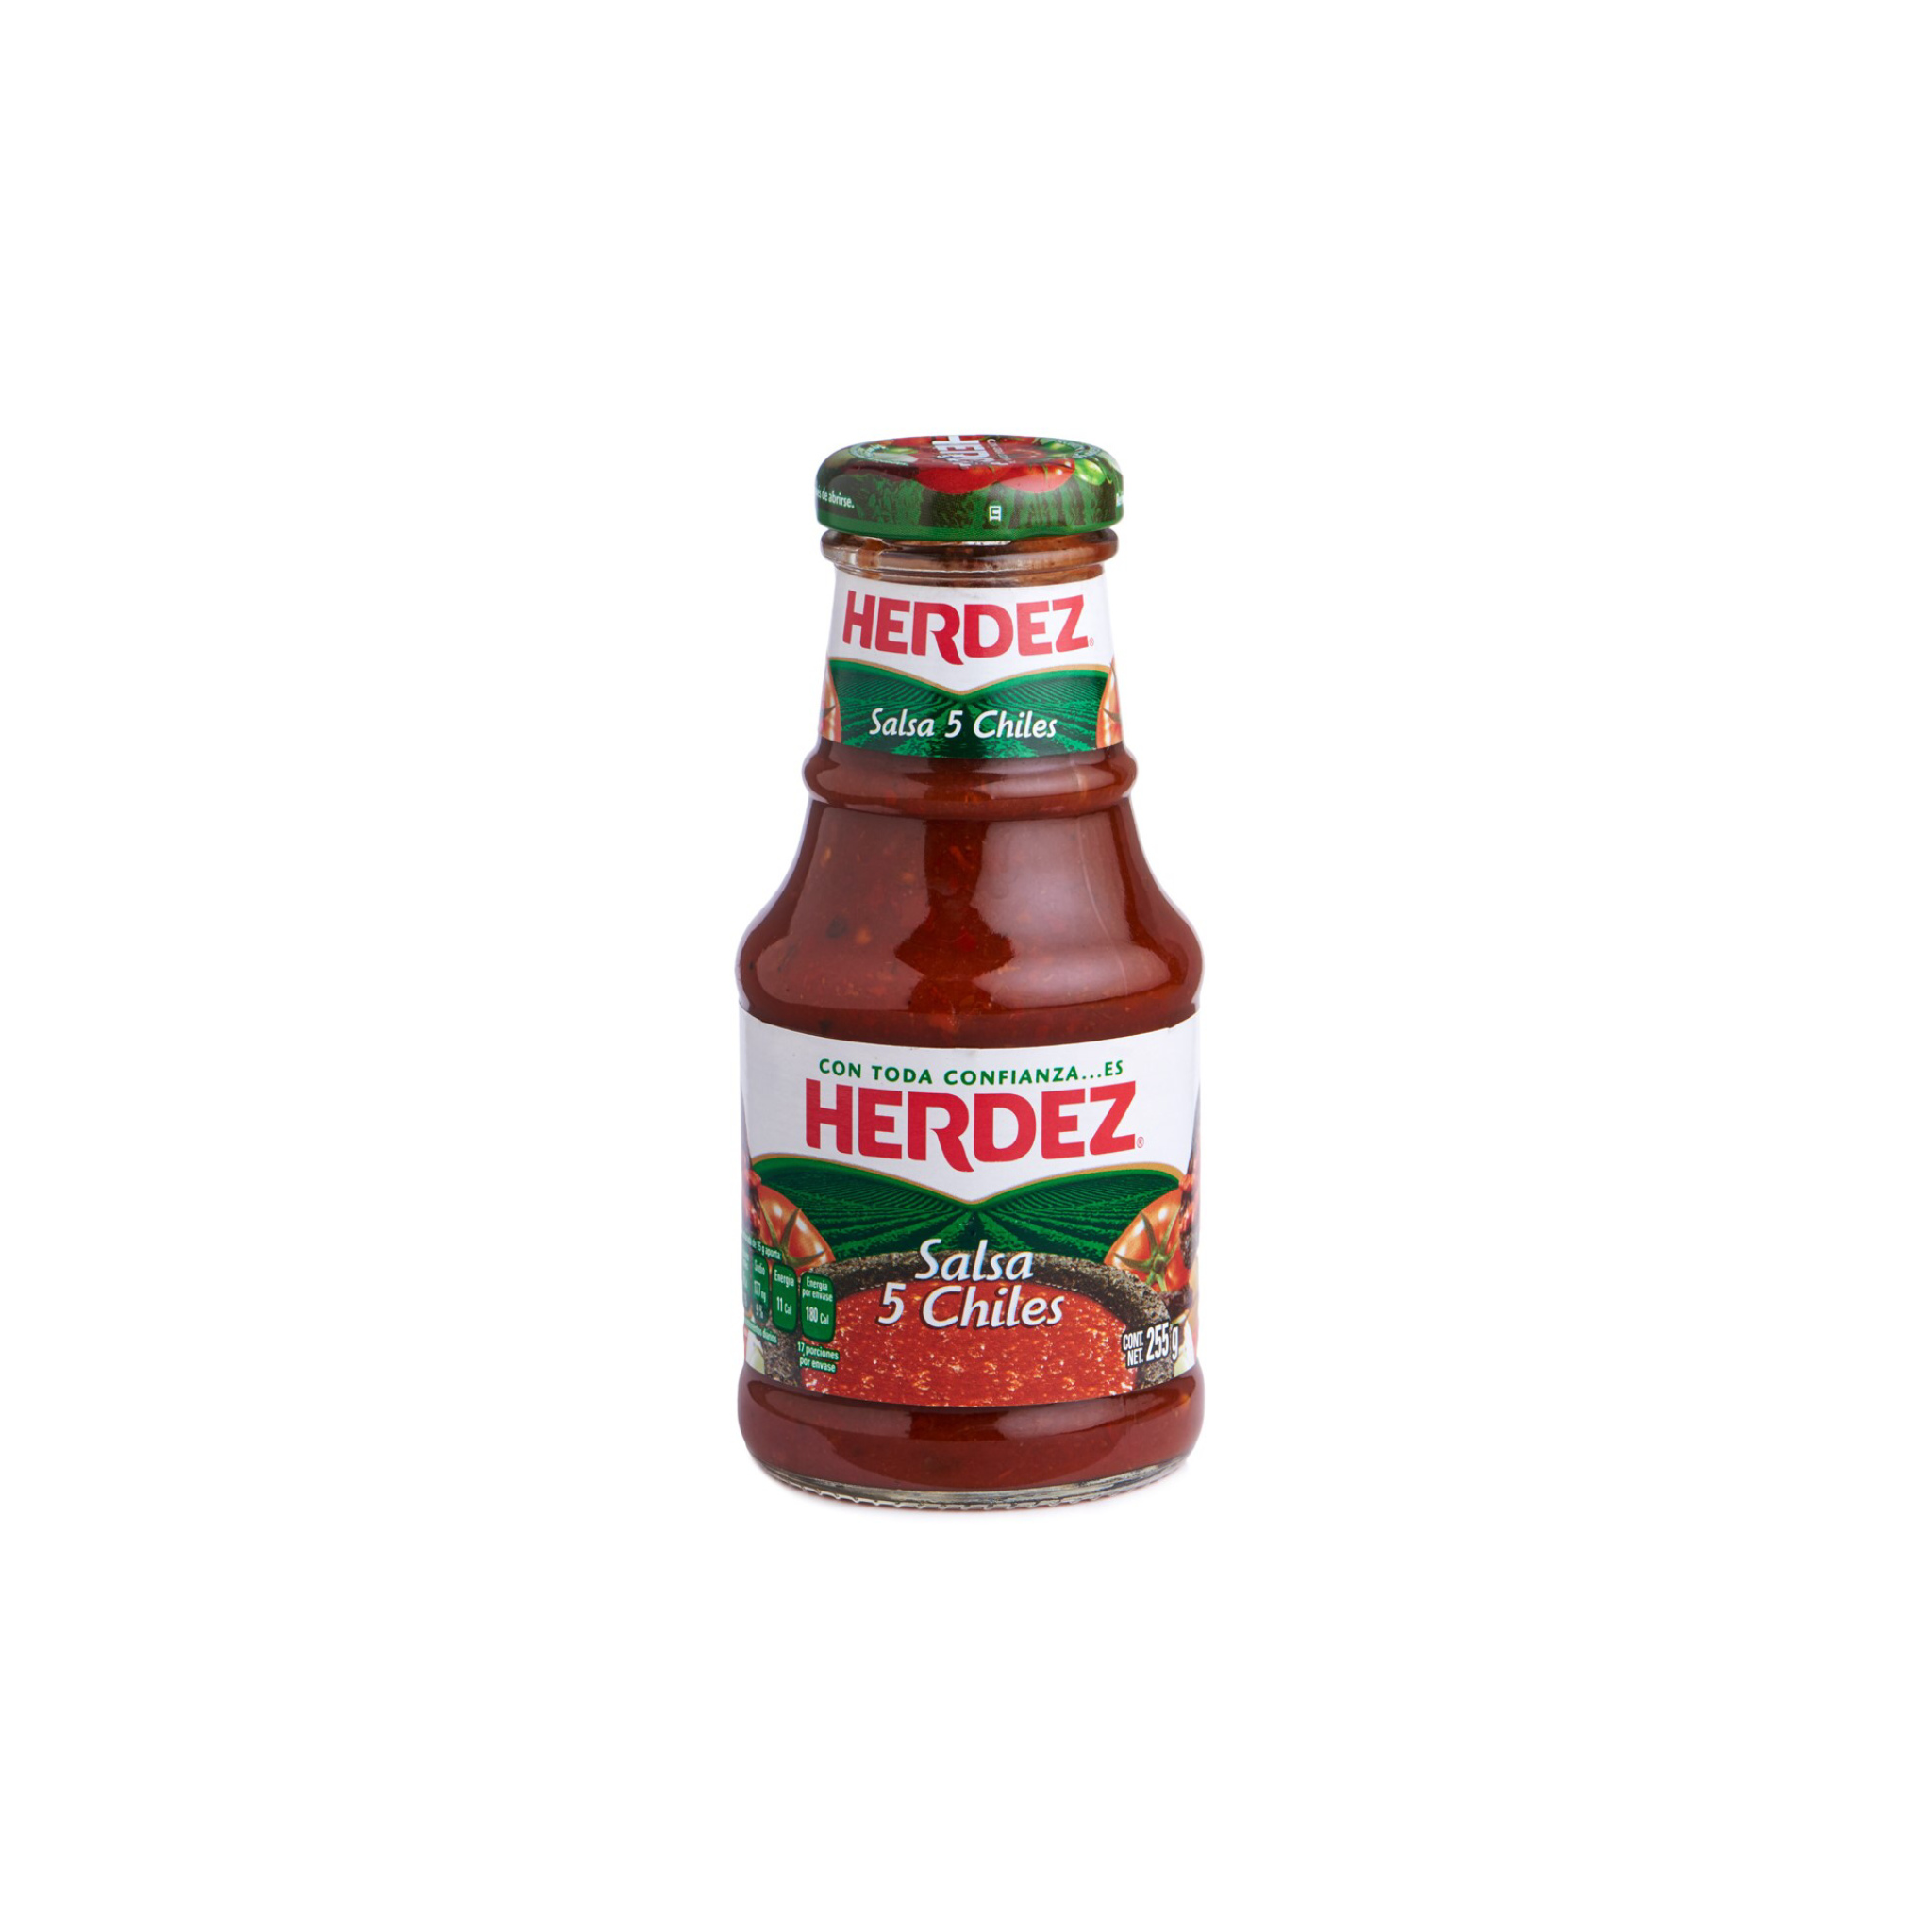 Herdez Salsa 5 Chiles Glass 225g